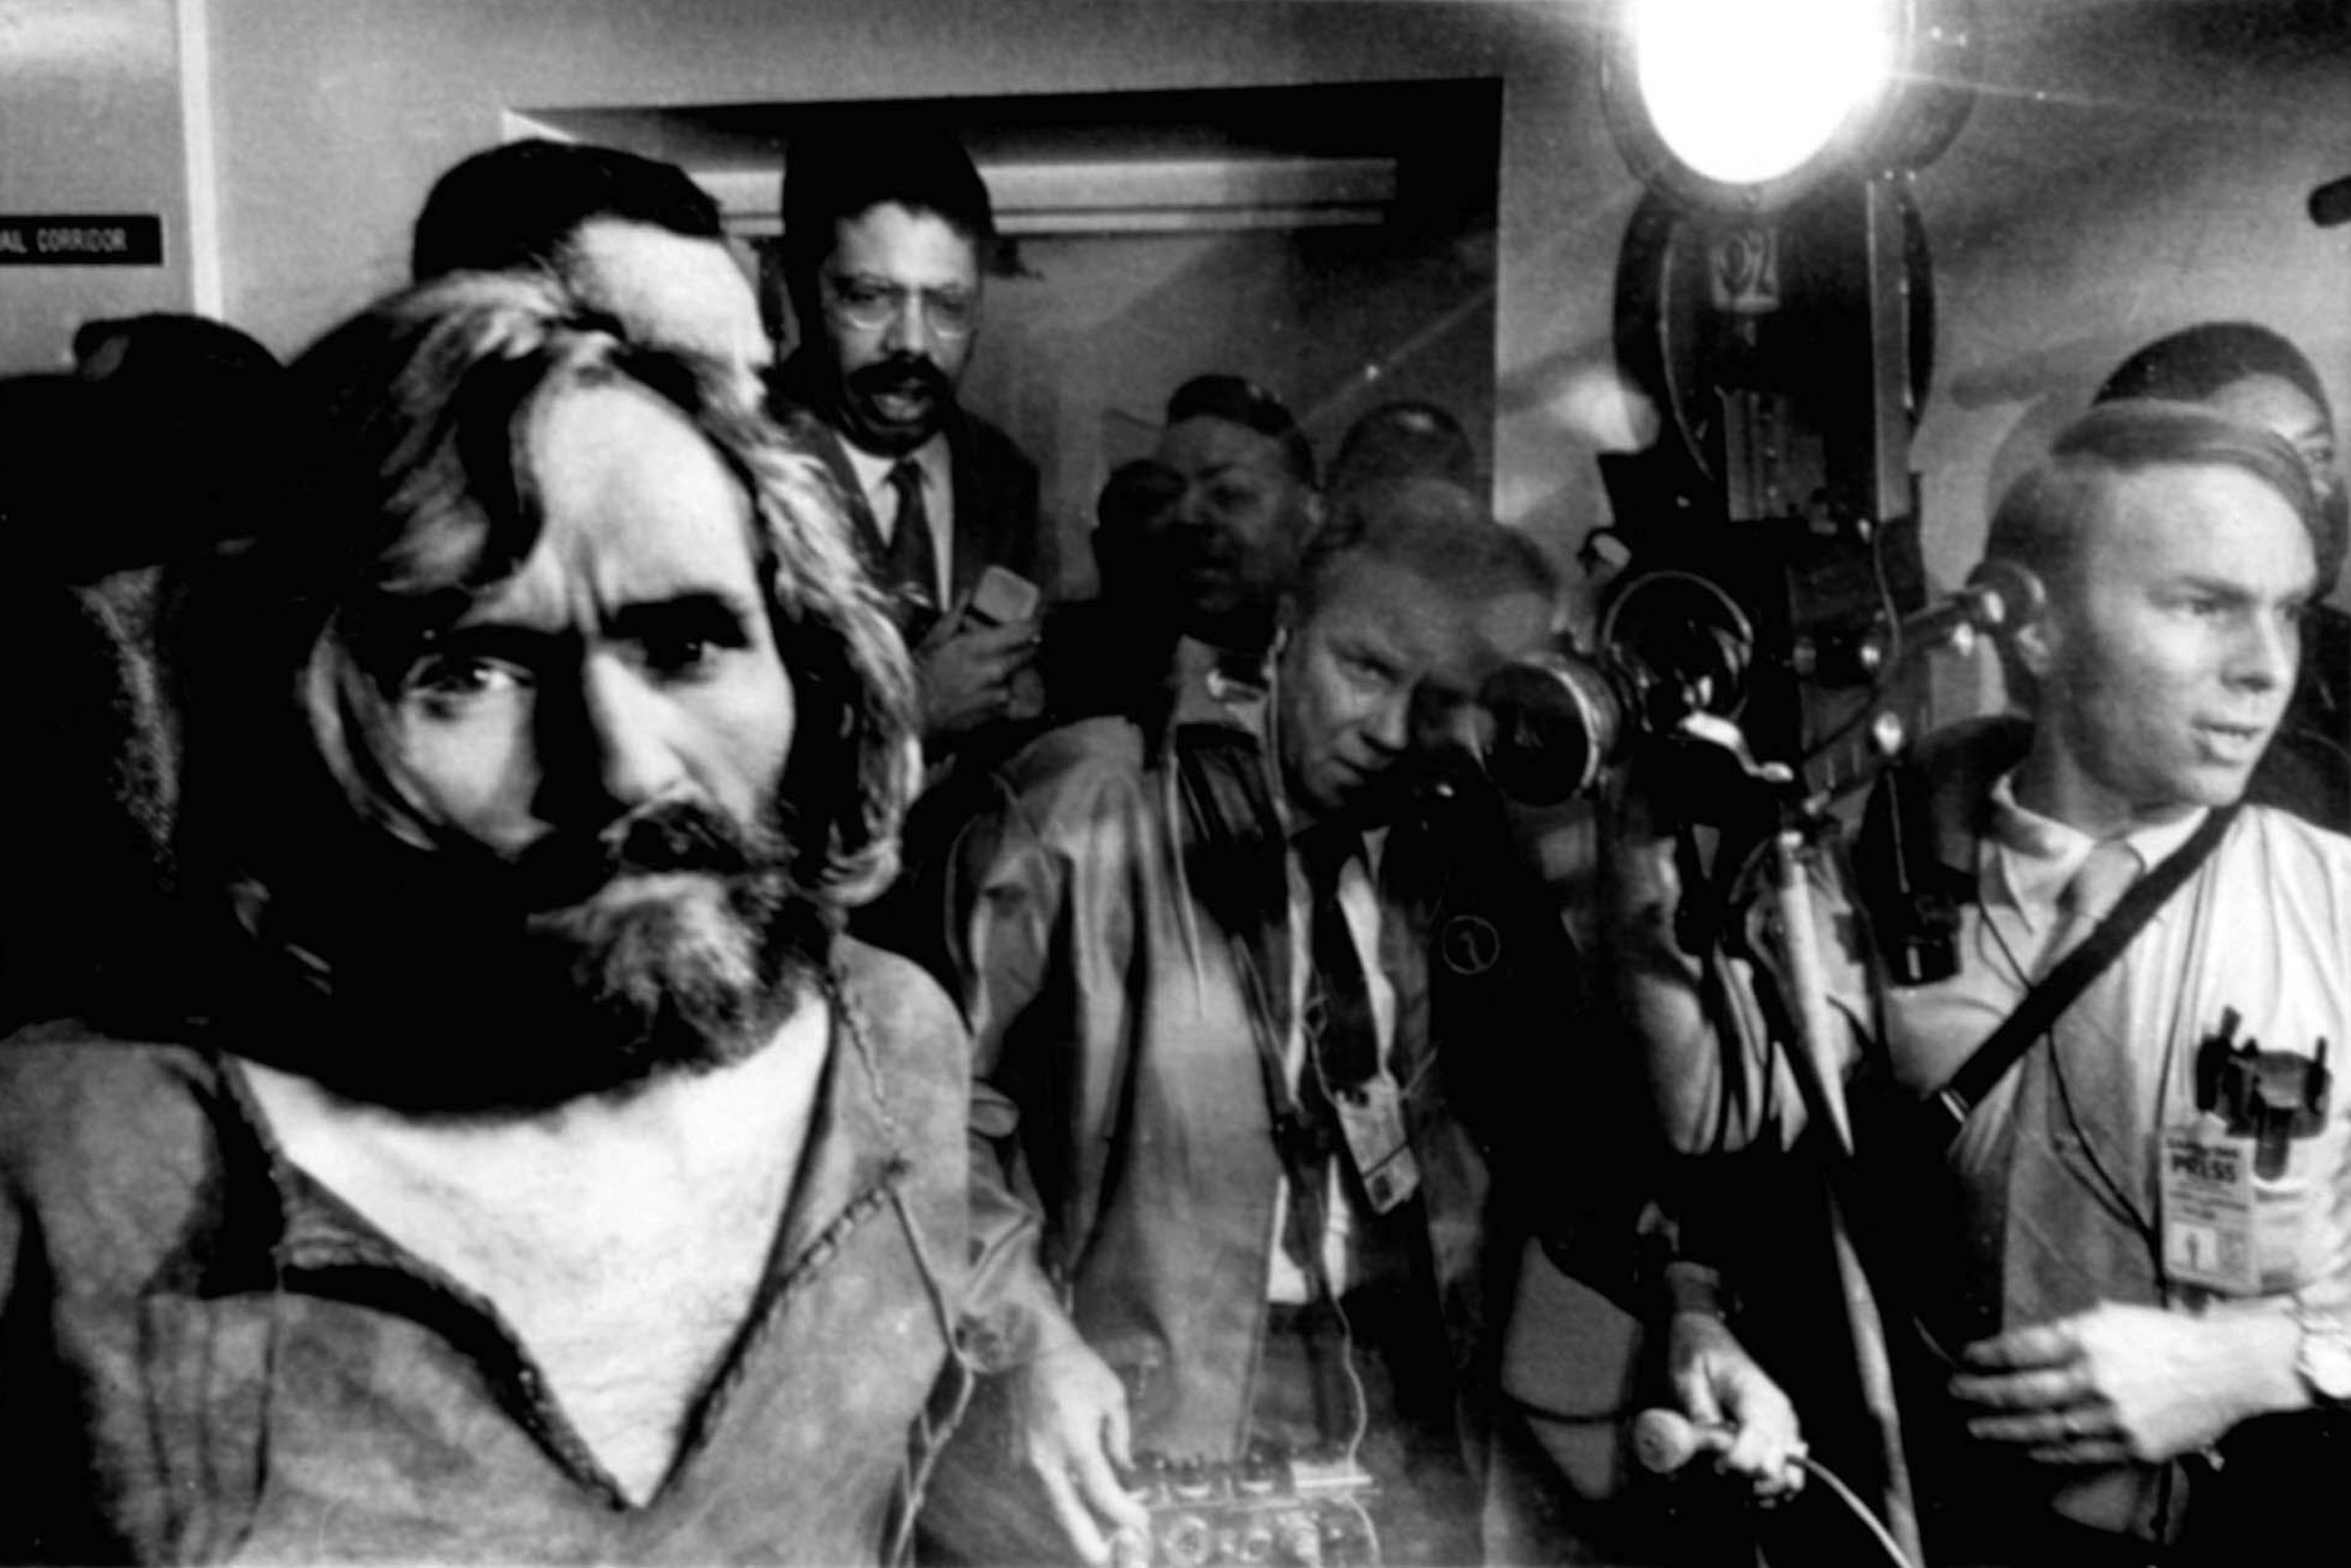 Charles Manson, the 35-year-old cult leader, is escorted through a crowd of newsmen as he arrives at the Los Angeles city jai